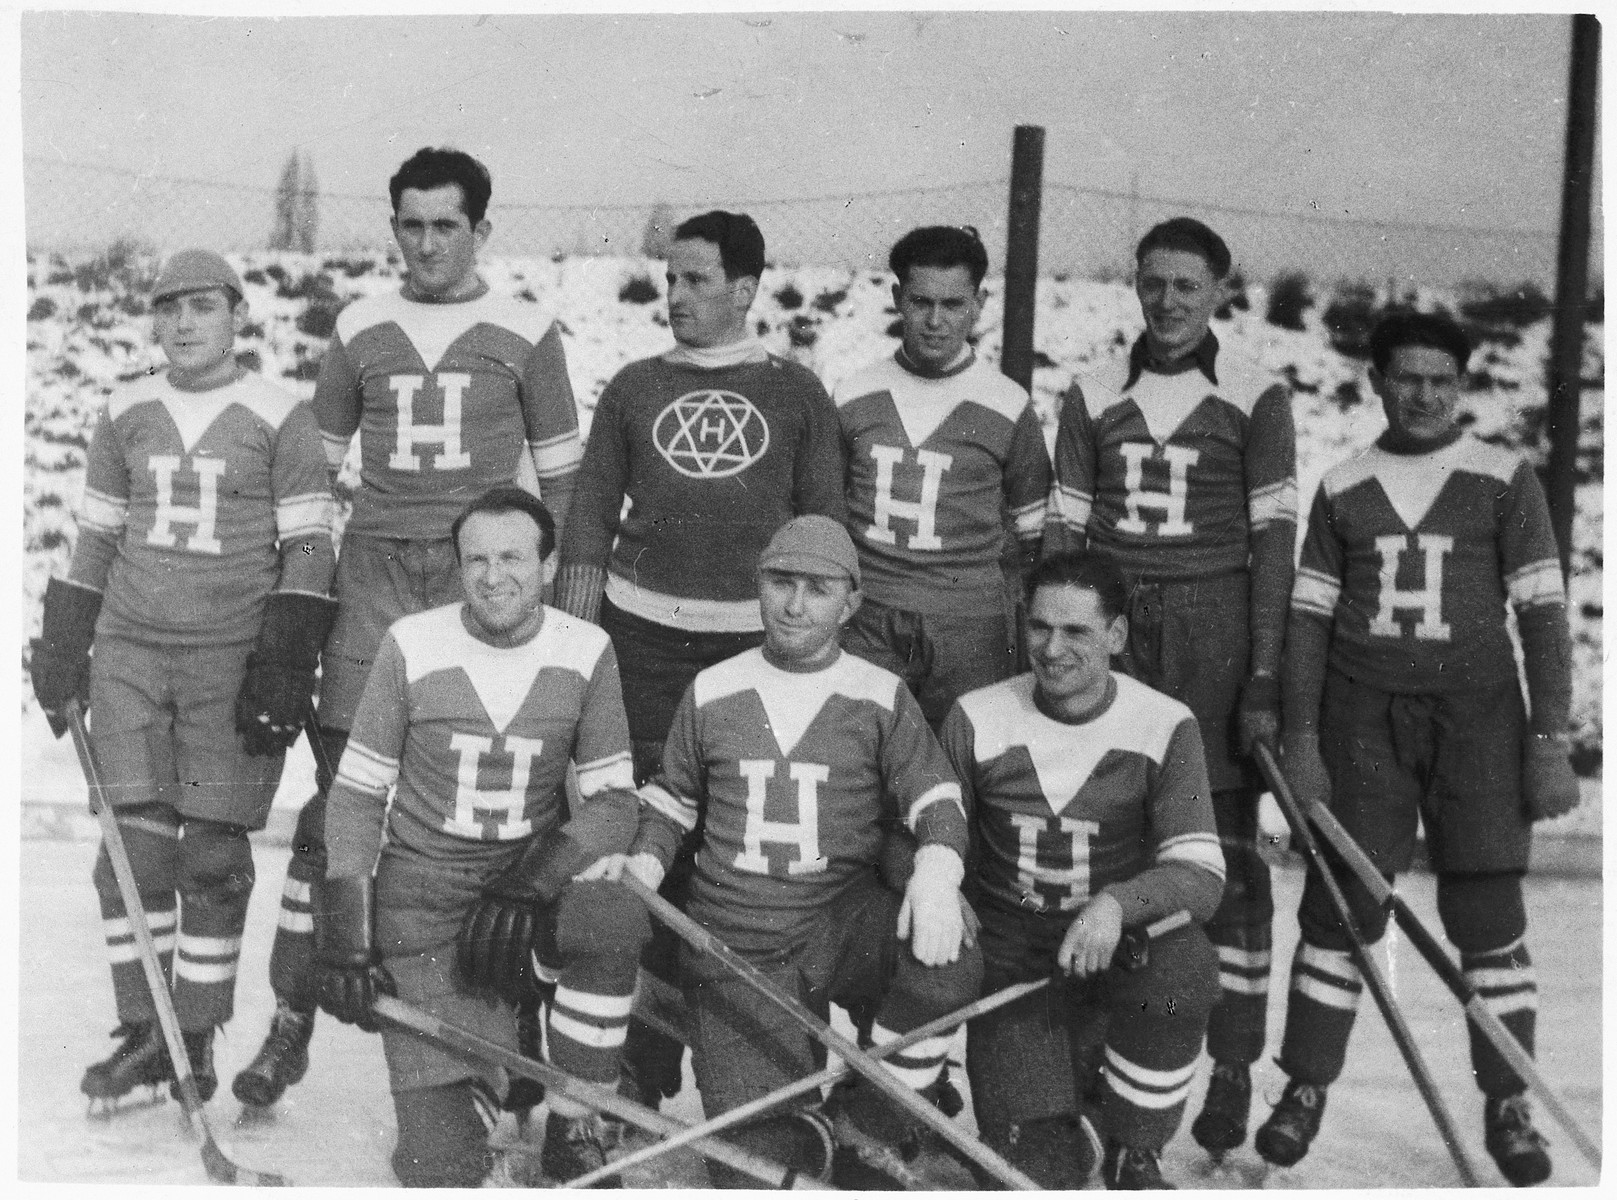 Members of the ice hockey team of the Jewish sport's club, Hagibor.  Ota Margolius is pictured standing on the far left.